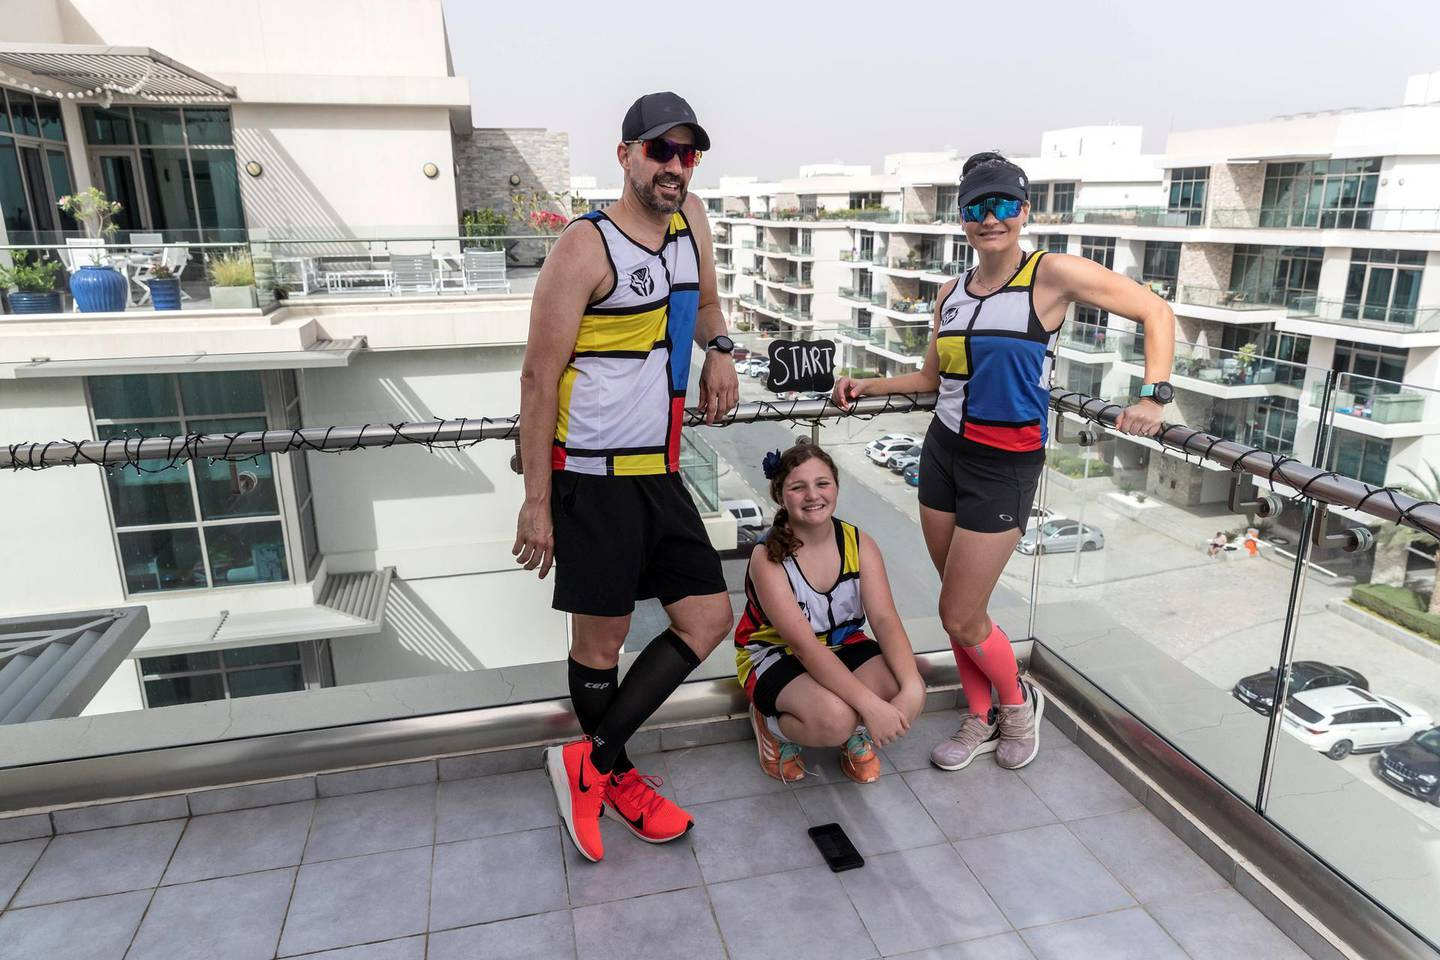 """DUBAI, UNITED ARAB EMIRATES. 28 MARCH 2020. Colin Allin and his wife Hilda along with their daughter Geena pose at their """"Start"""" section of their balcony marathon at their apartment in the Meydan Polo Residence. Colin and his wife Hilda are running a marathon on their balcony while the City of Dubai is under a Stay At Home policy to keep residence safe from the spread of Covid-19. (Photo: Antonie Robertson/The National) Journalist: Patrick Ryan. Section: Business."""